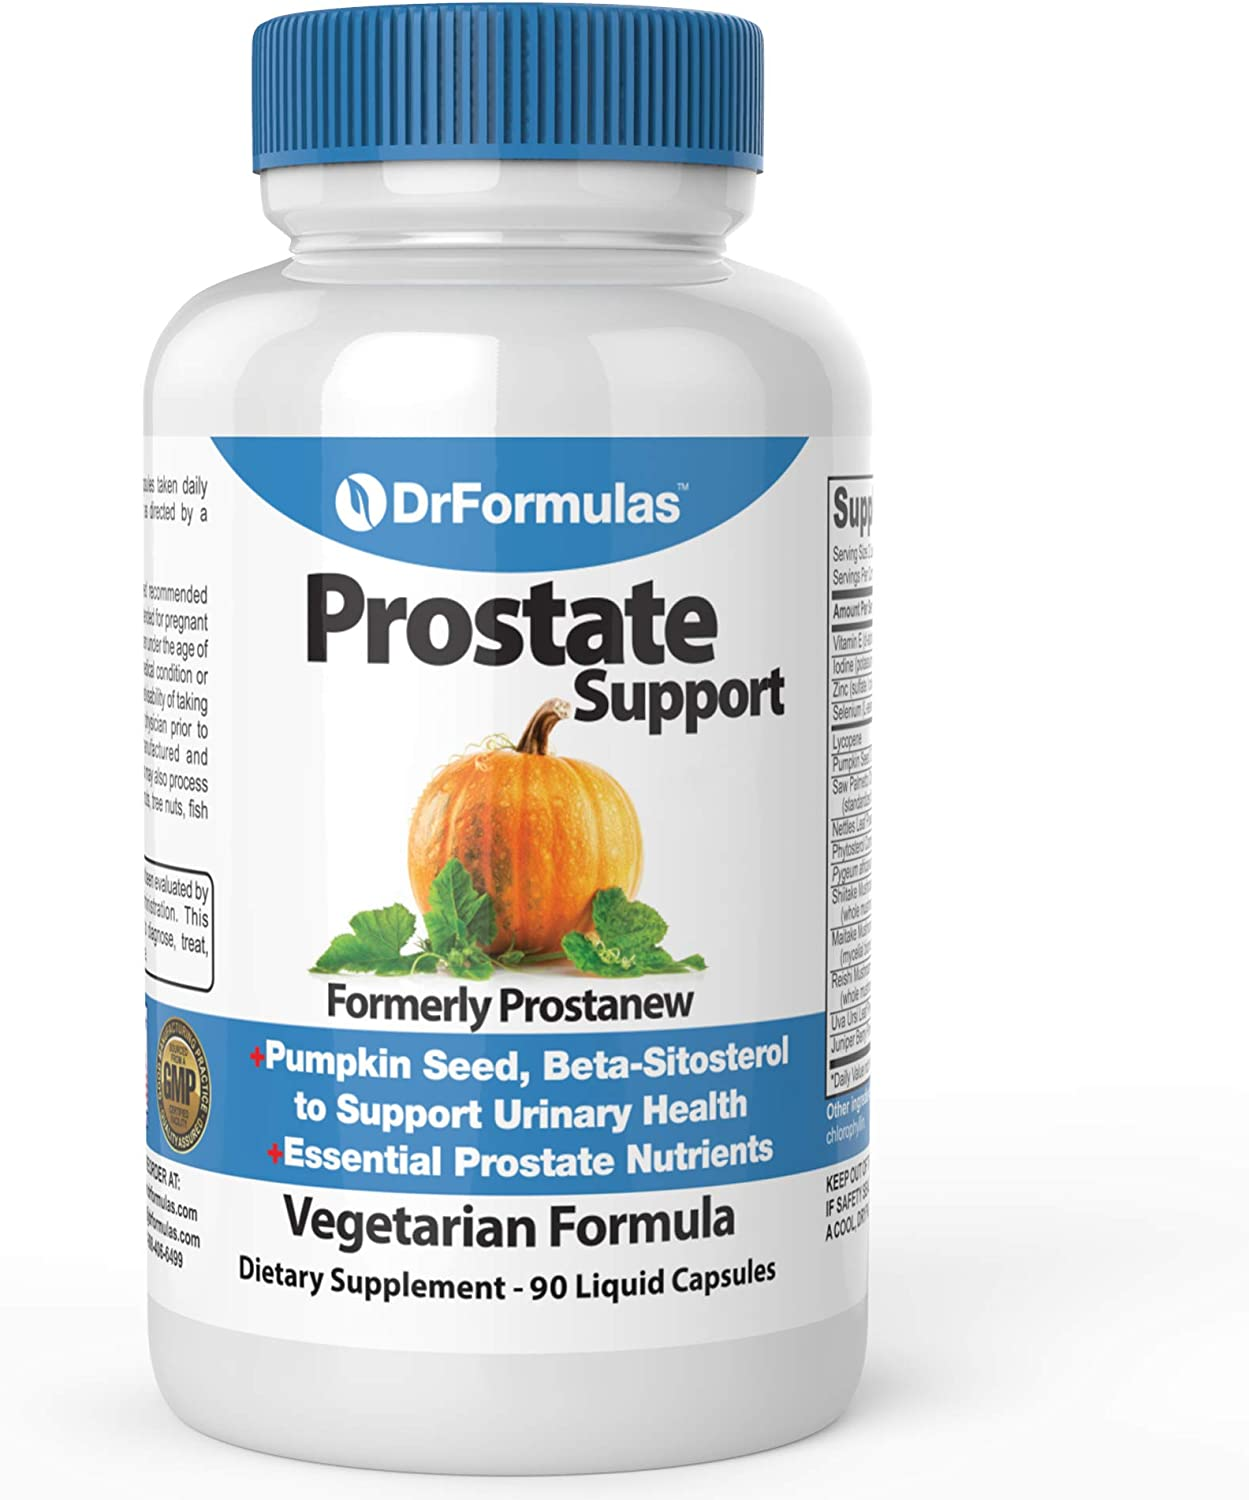 DrFormulas Super Prostate Supplement | Best Prostate Support with Saw Palmetto Extract, Beta Sitosterol, Pumpkin Seed Oil Now, 90 Vegetarian Capsules